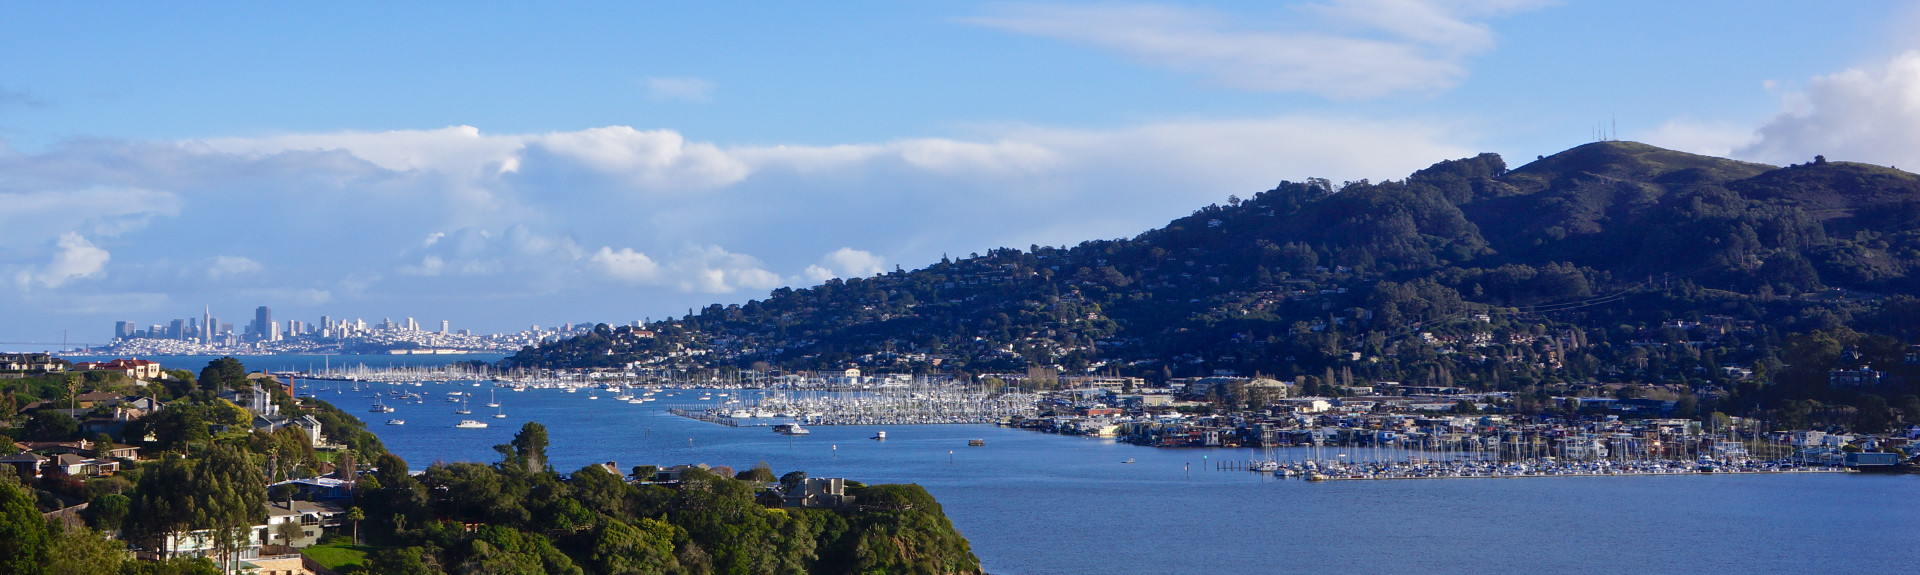 Sausalito From Strawberry - Mike Moyle